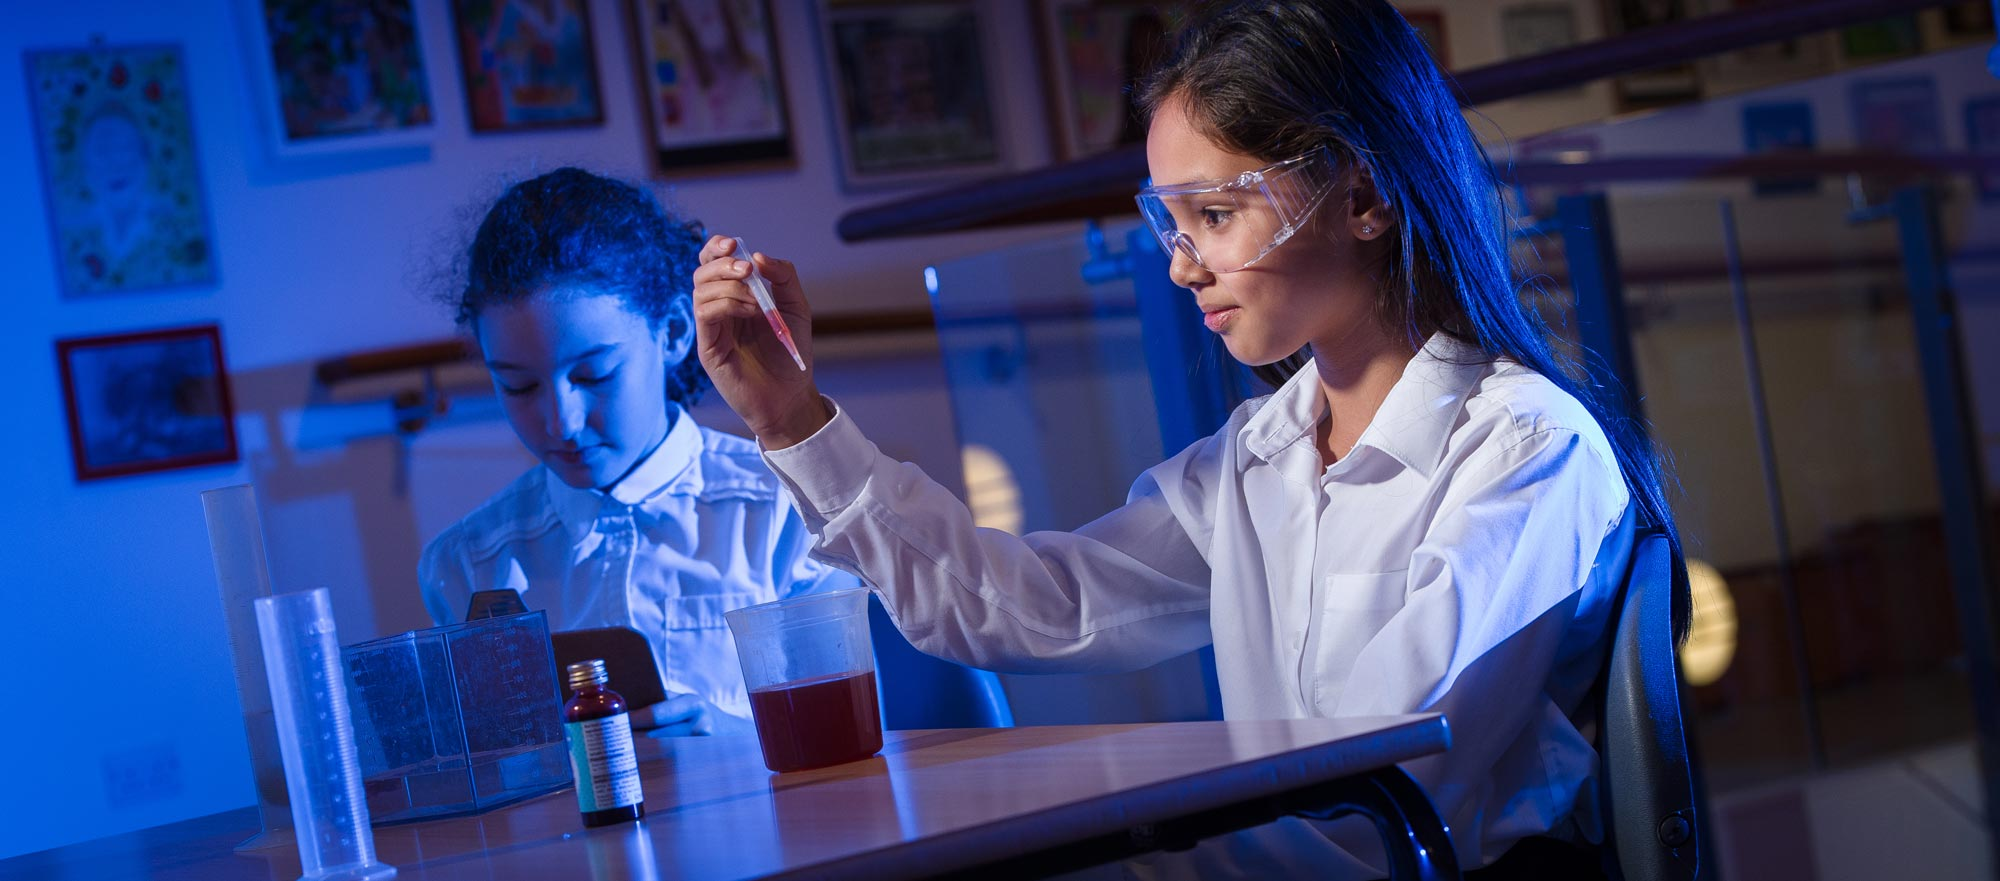 Girl examining the result of a chemistry experiment